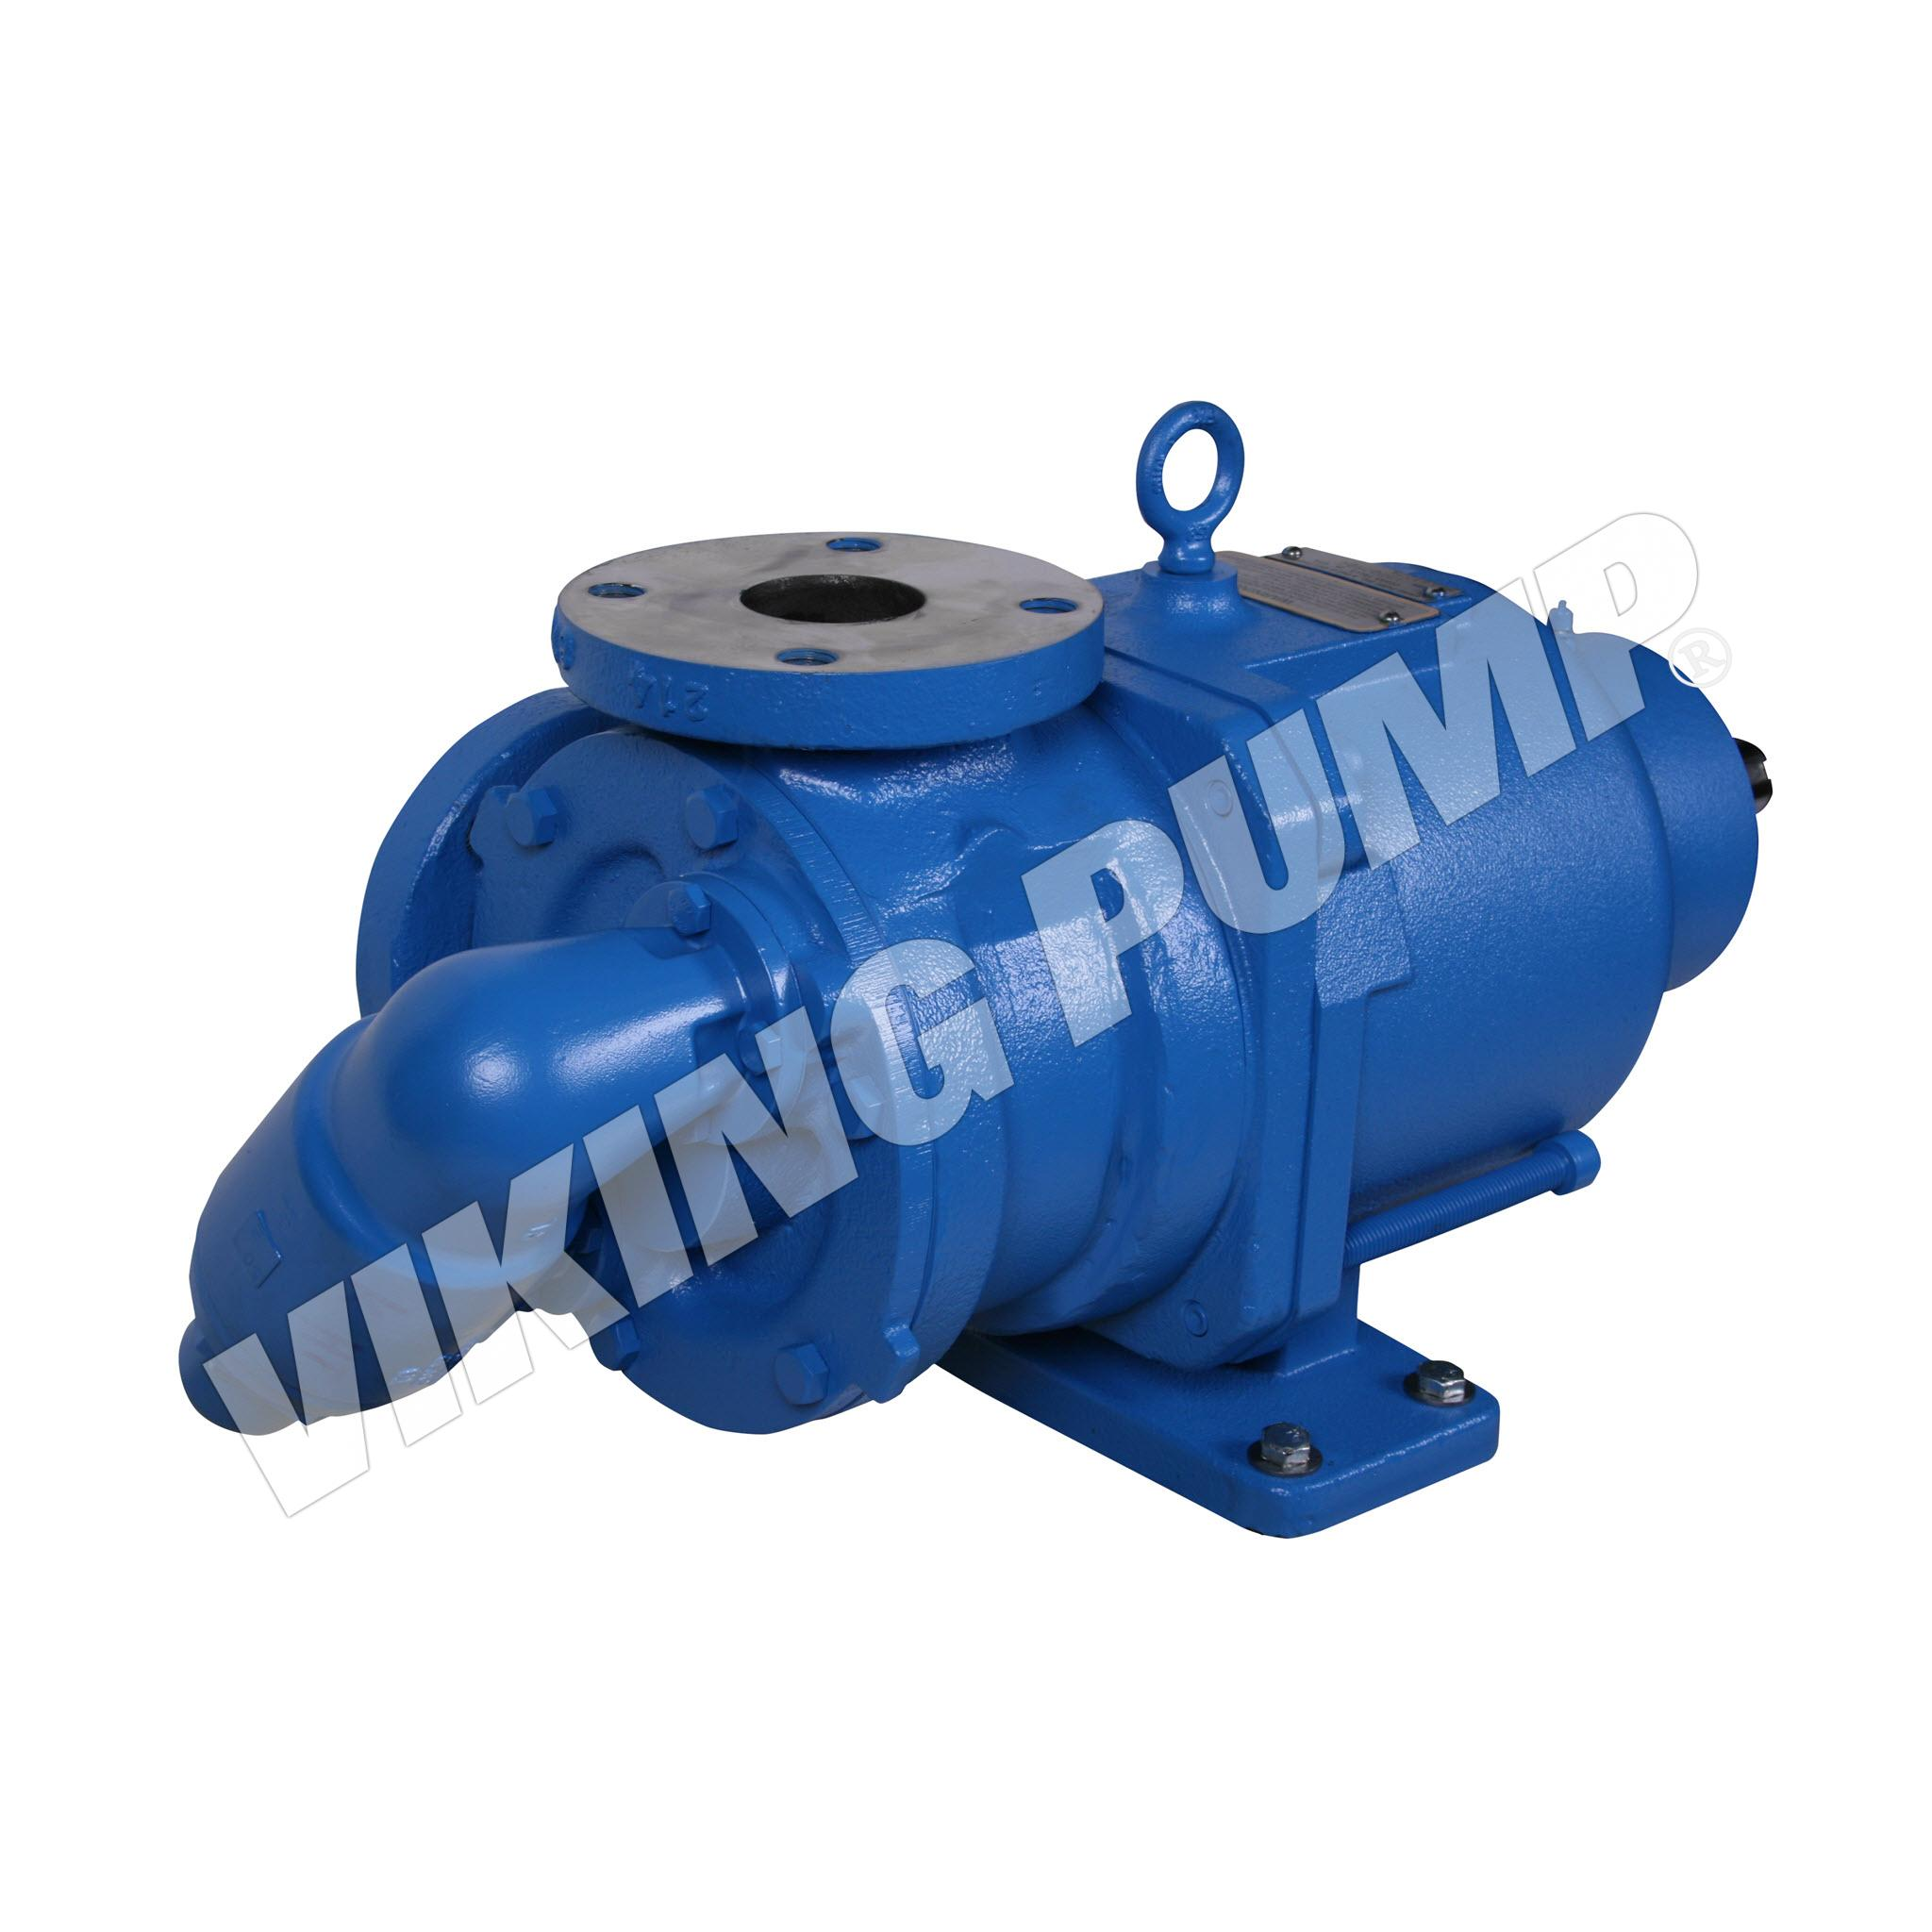 Model K8127A, Foot Mounted, Mag Drive, Relief Valve Pump